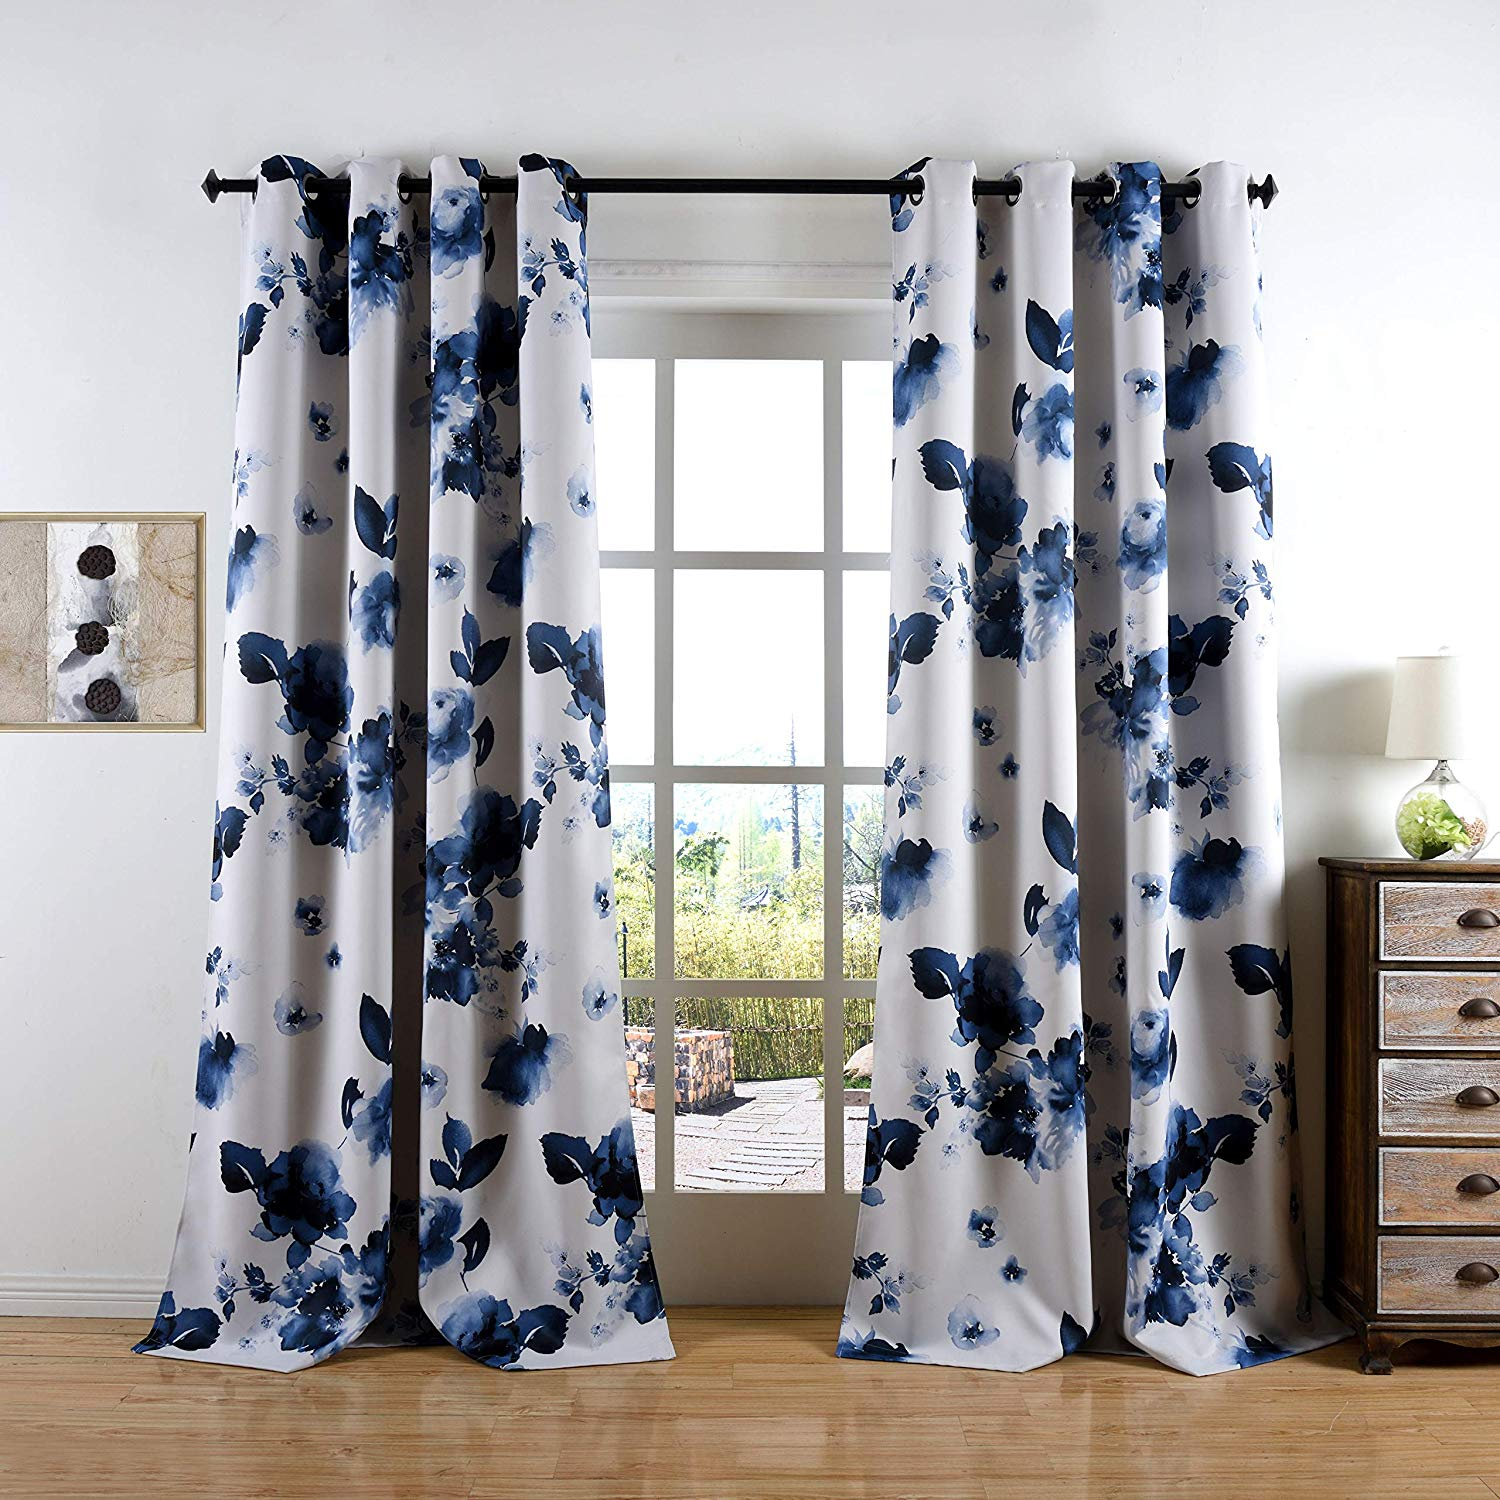 Blue printed black out curtains/Luxury and elegance grommets curtains for living room and bedroom